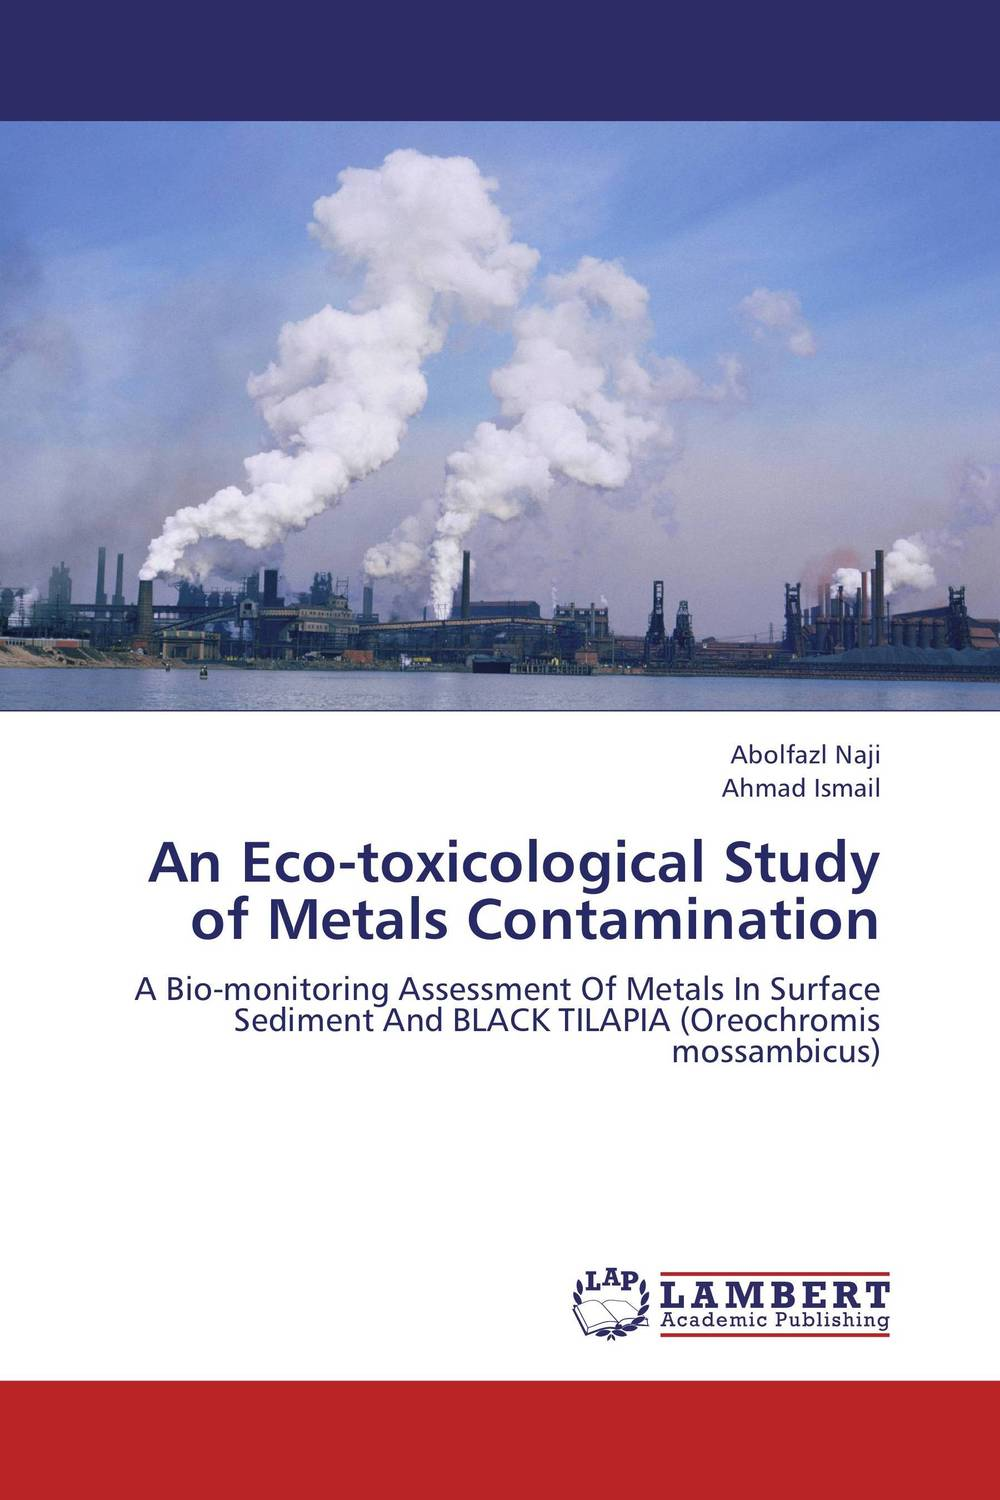 An Eco-toxicological Study of Metals Contamination robert mason p trace metals in aquatic systems